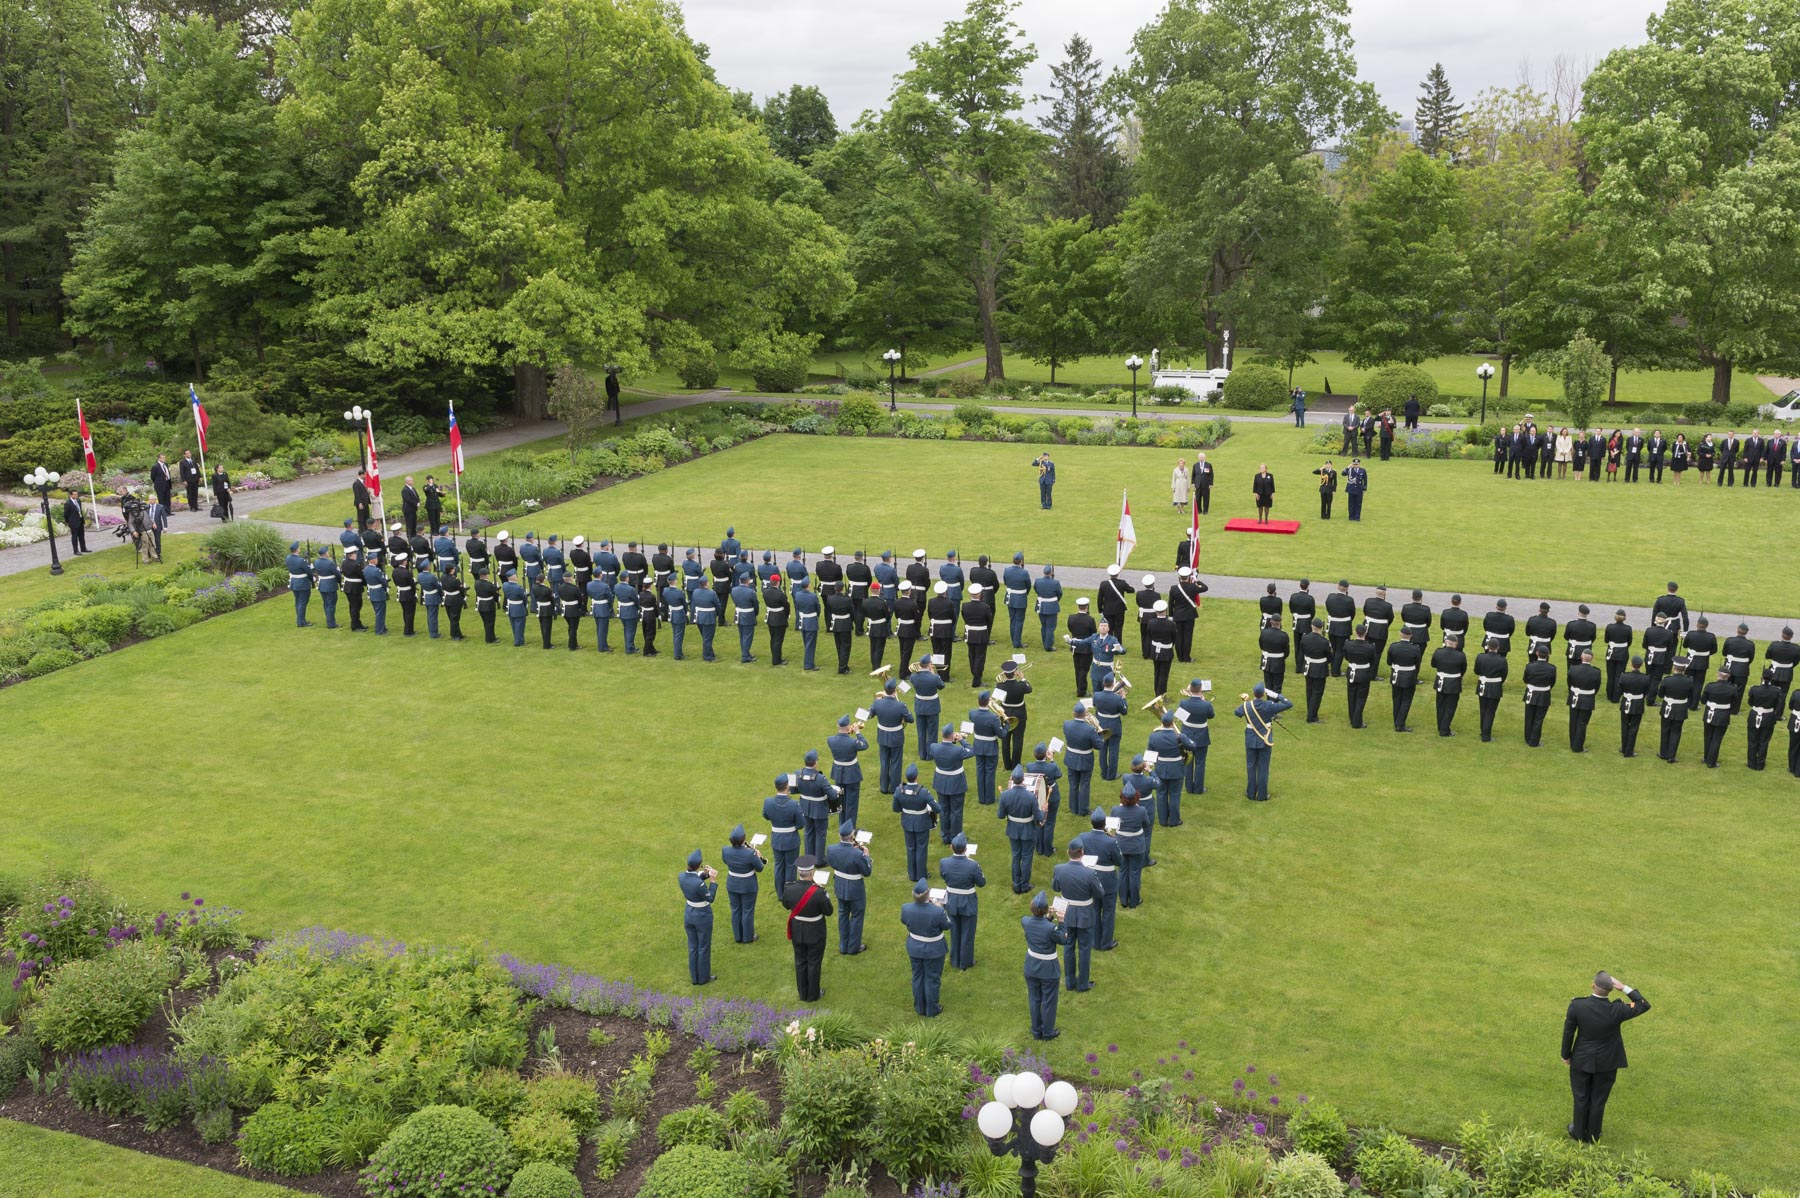 The guard of honour was composed of members from the Canadian Army, the Royal Canadian Navy and the Royal Canadian Air Force.